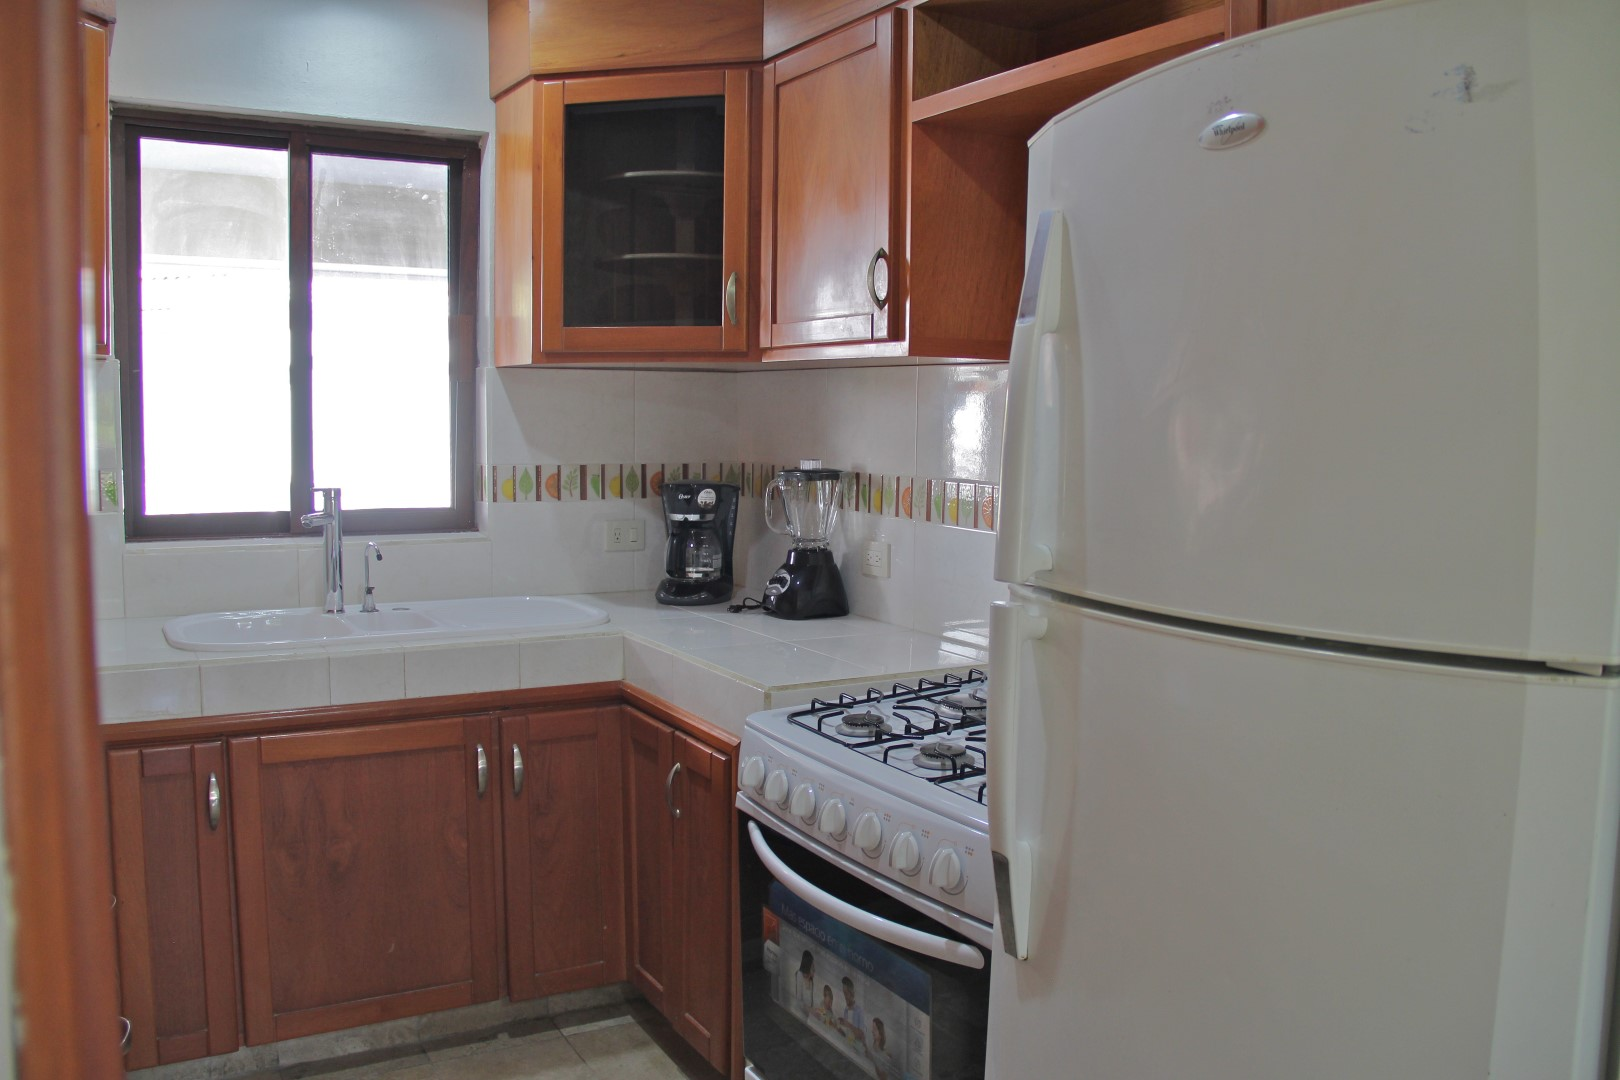 Full kitchen with window